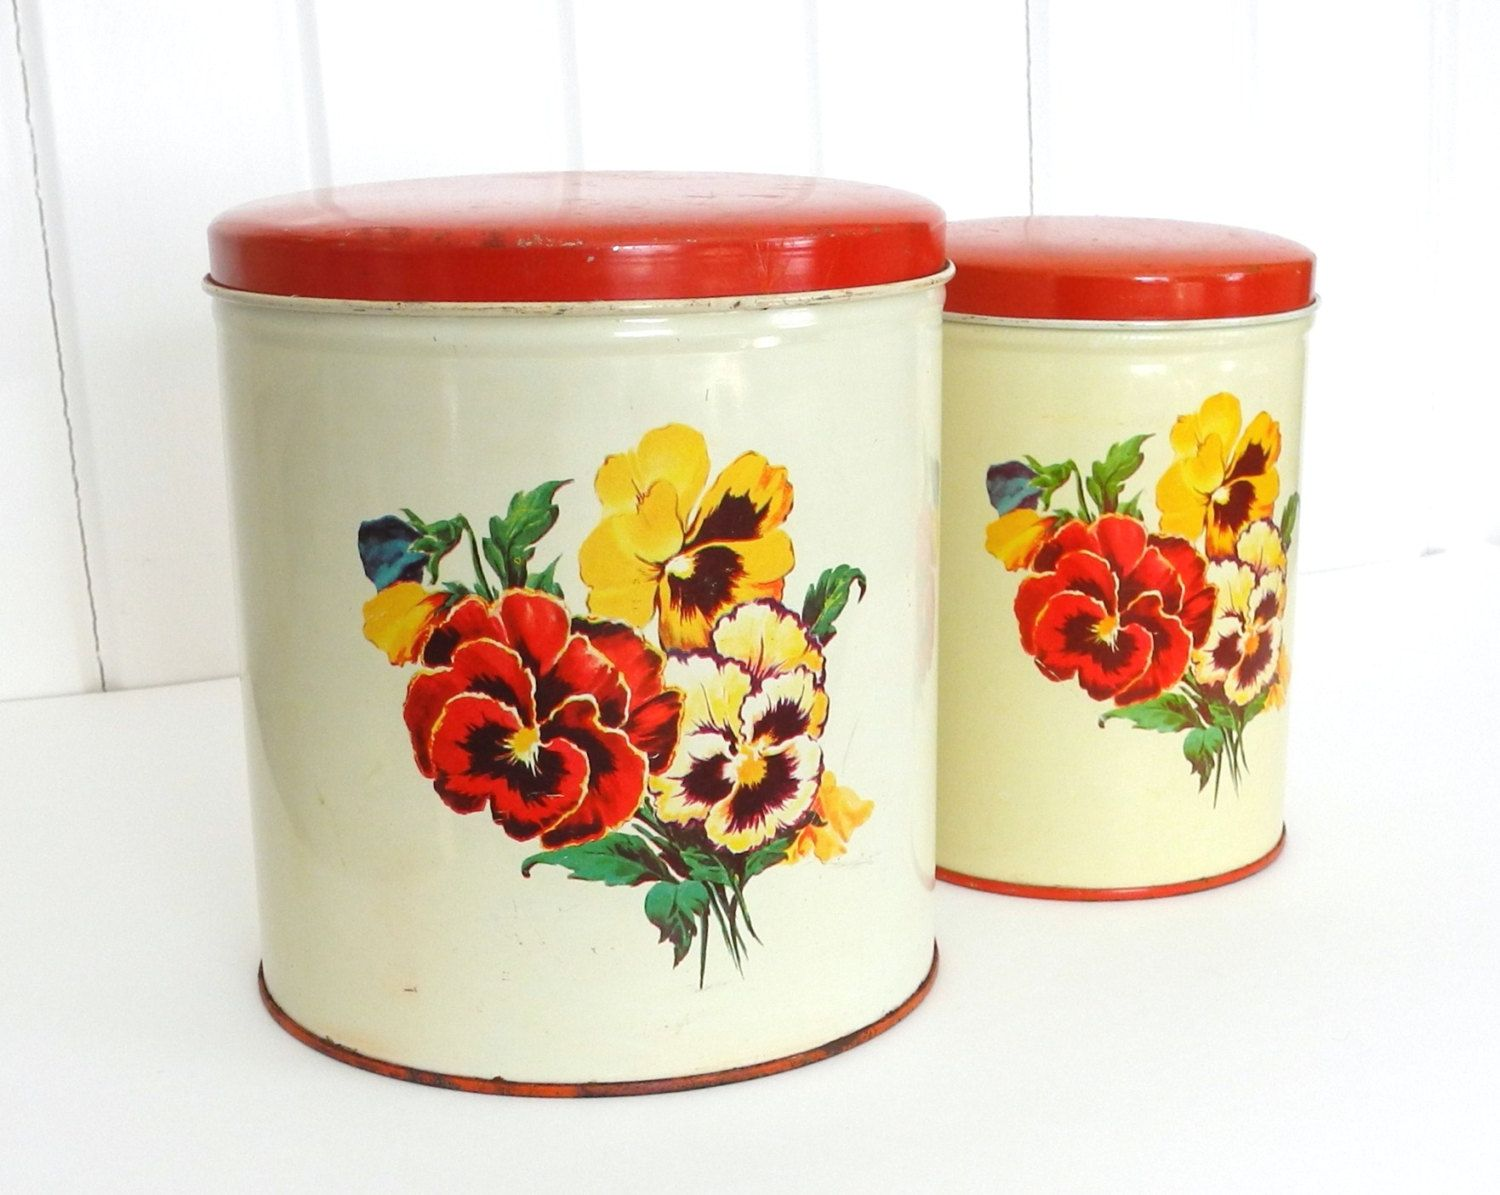 Vintage Parmeco Canisters, Set Of 2 Metal Kitchen Canisters With Red Lids  And Pansy Motif, Parker Metal Dec. Co